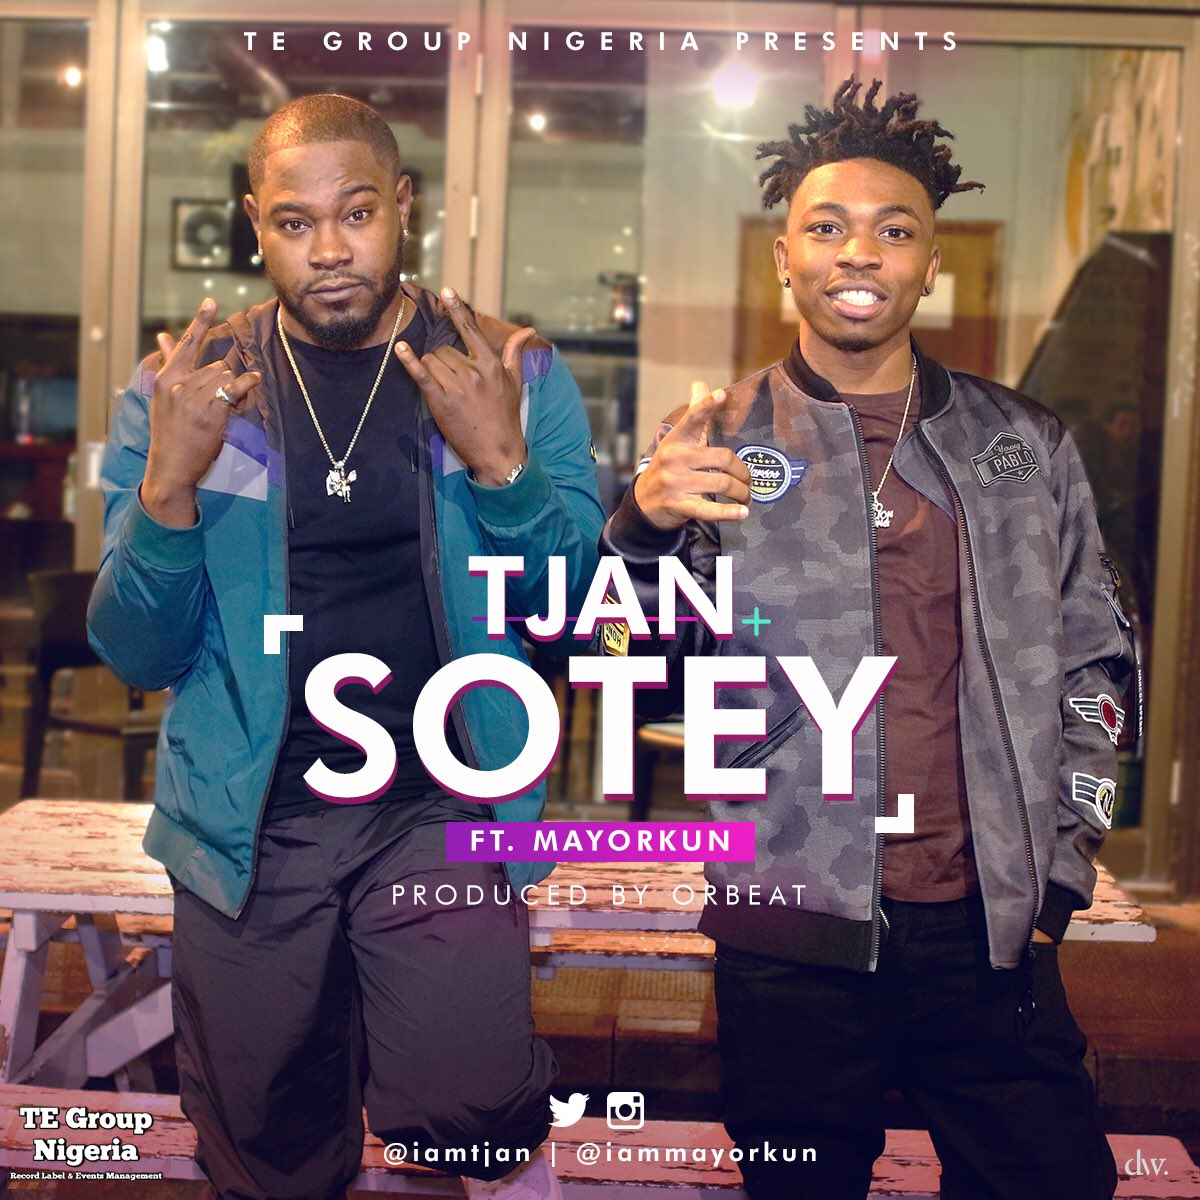 VIDEO: Tjan ft. Mayorkun – Sotey